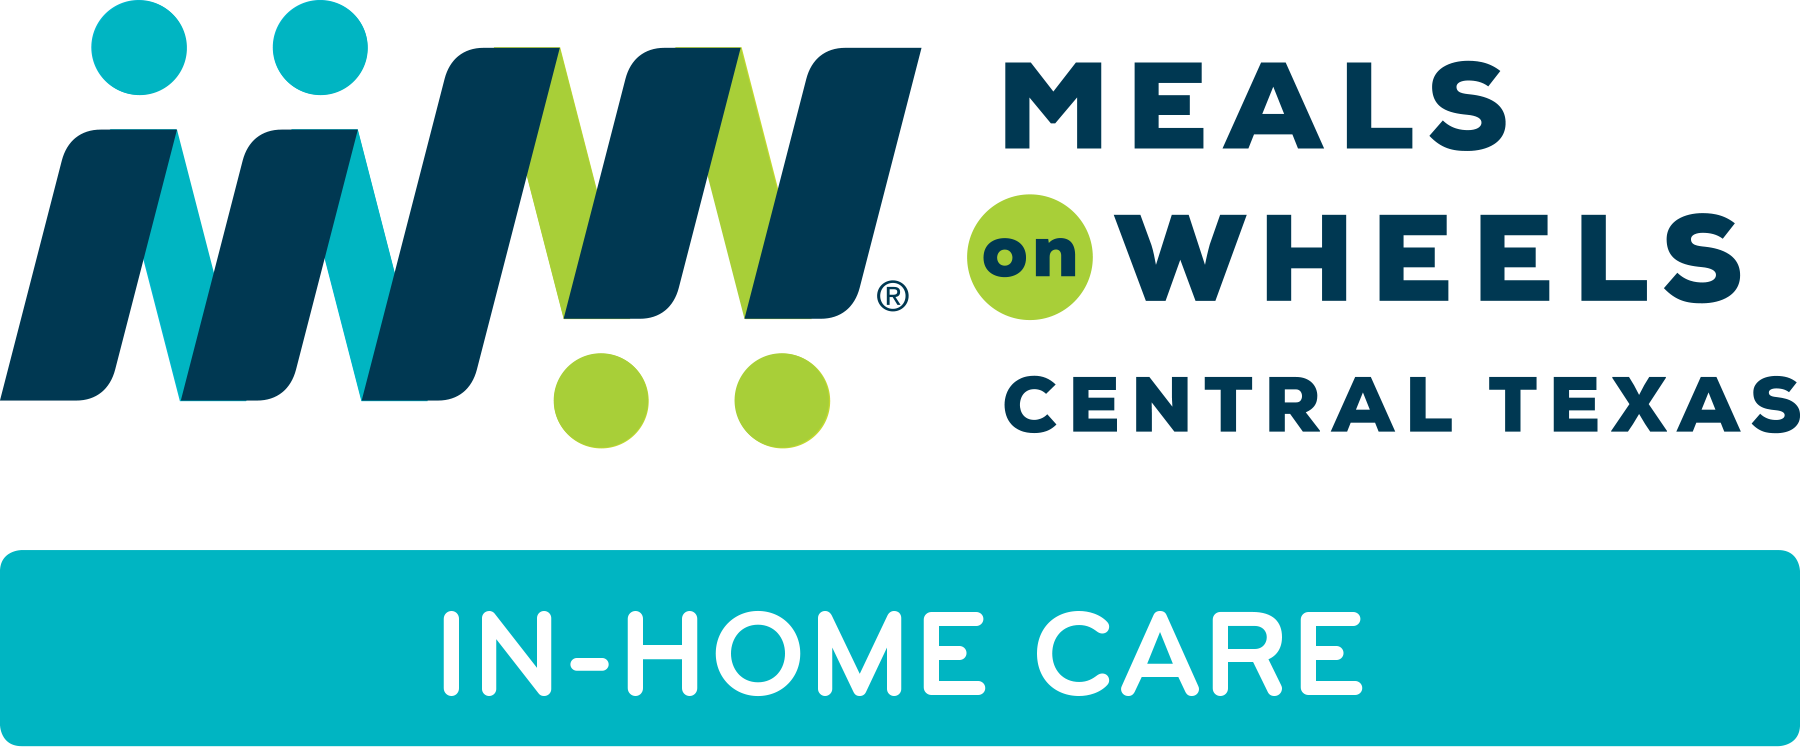 In-Home Care logo